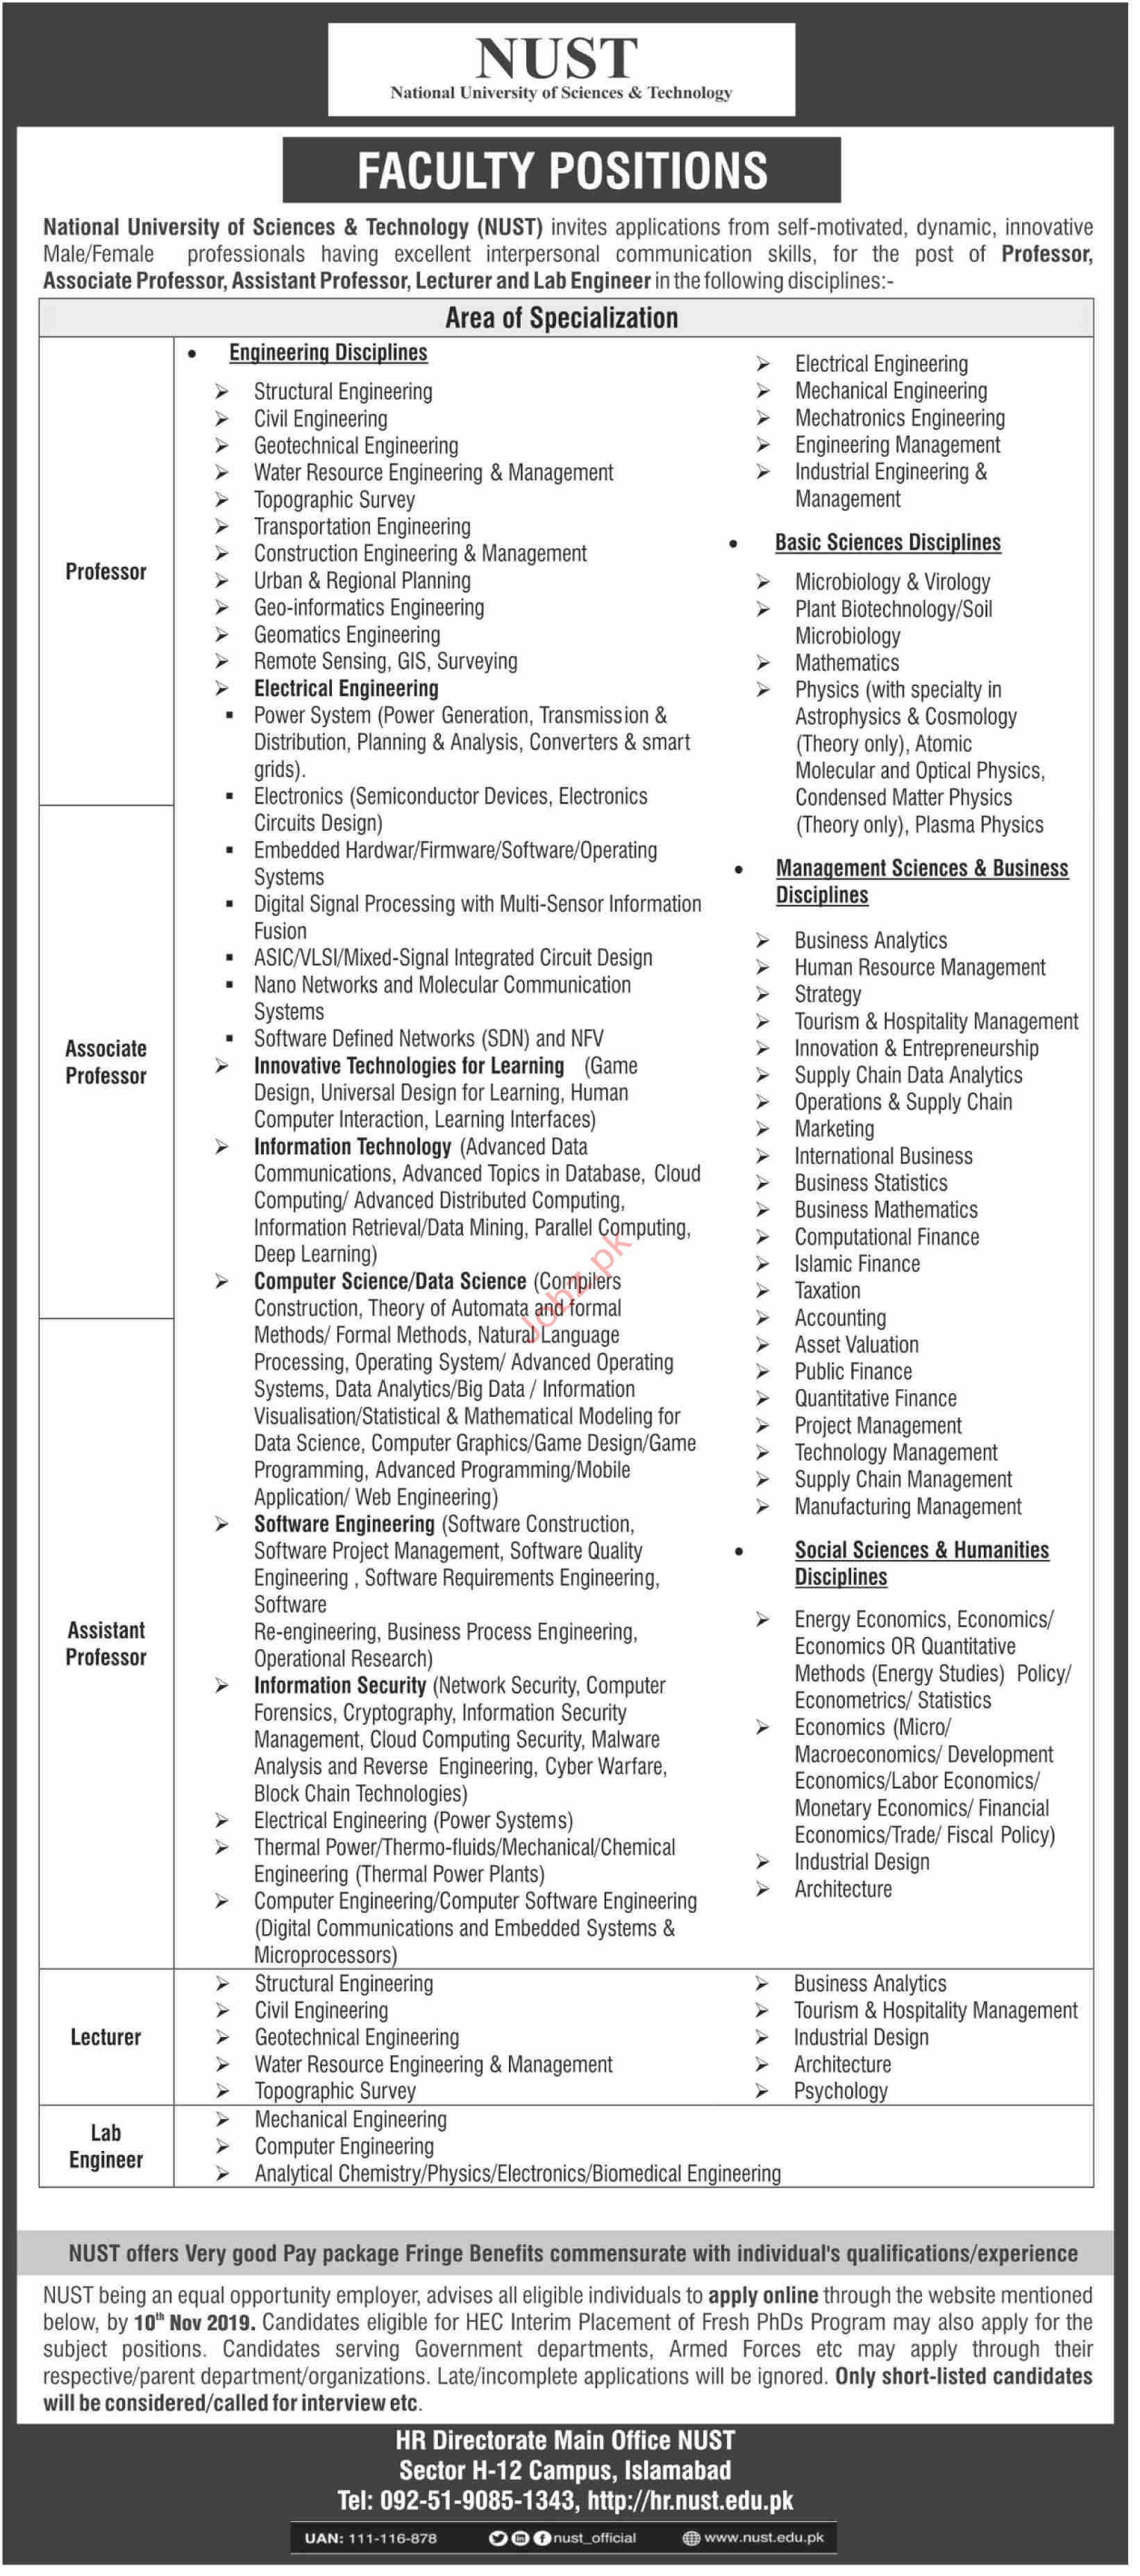 National University of Science & Technology NUST Isb Jobs